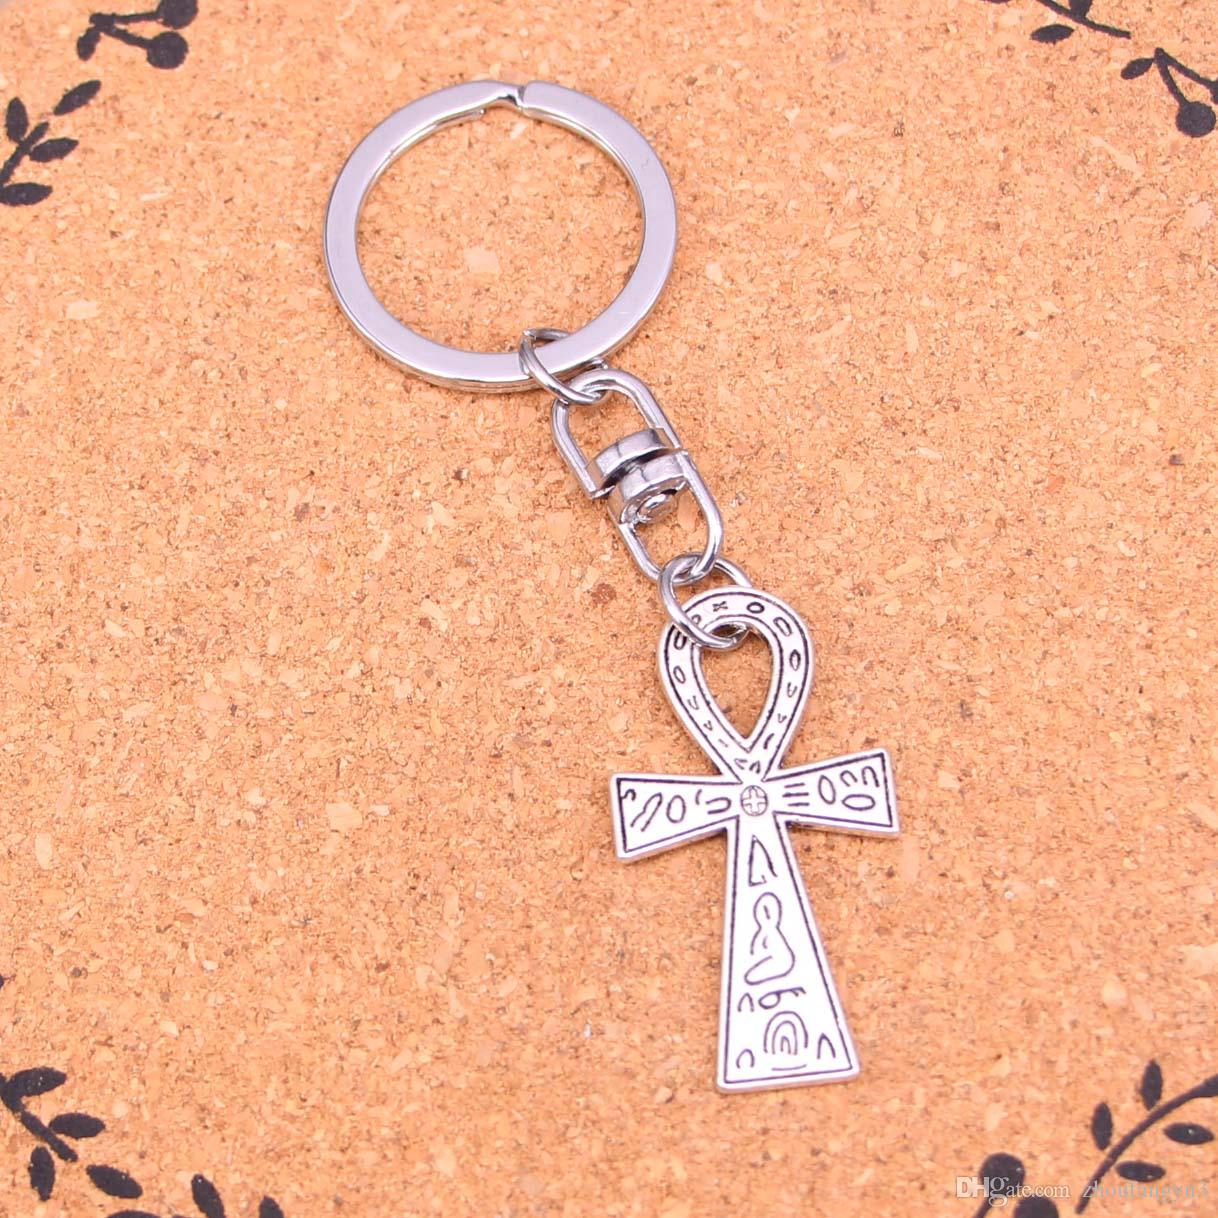 New Design egyptian ankh life symbol Keychain Car Key Chain Key Ring silver pendant For Man Women Gift1